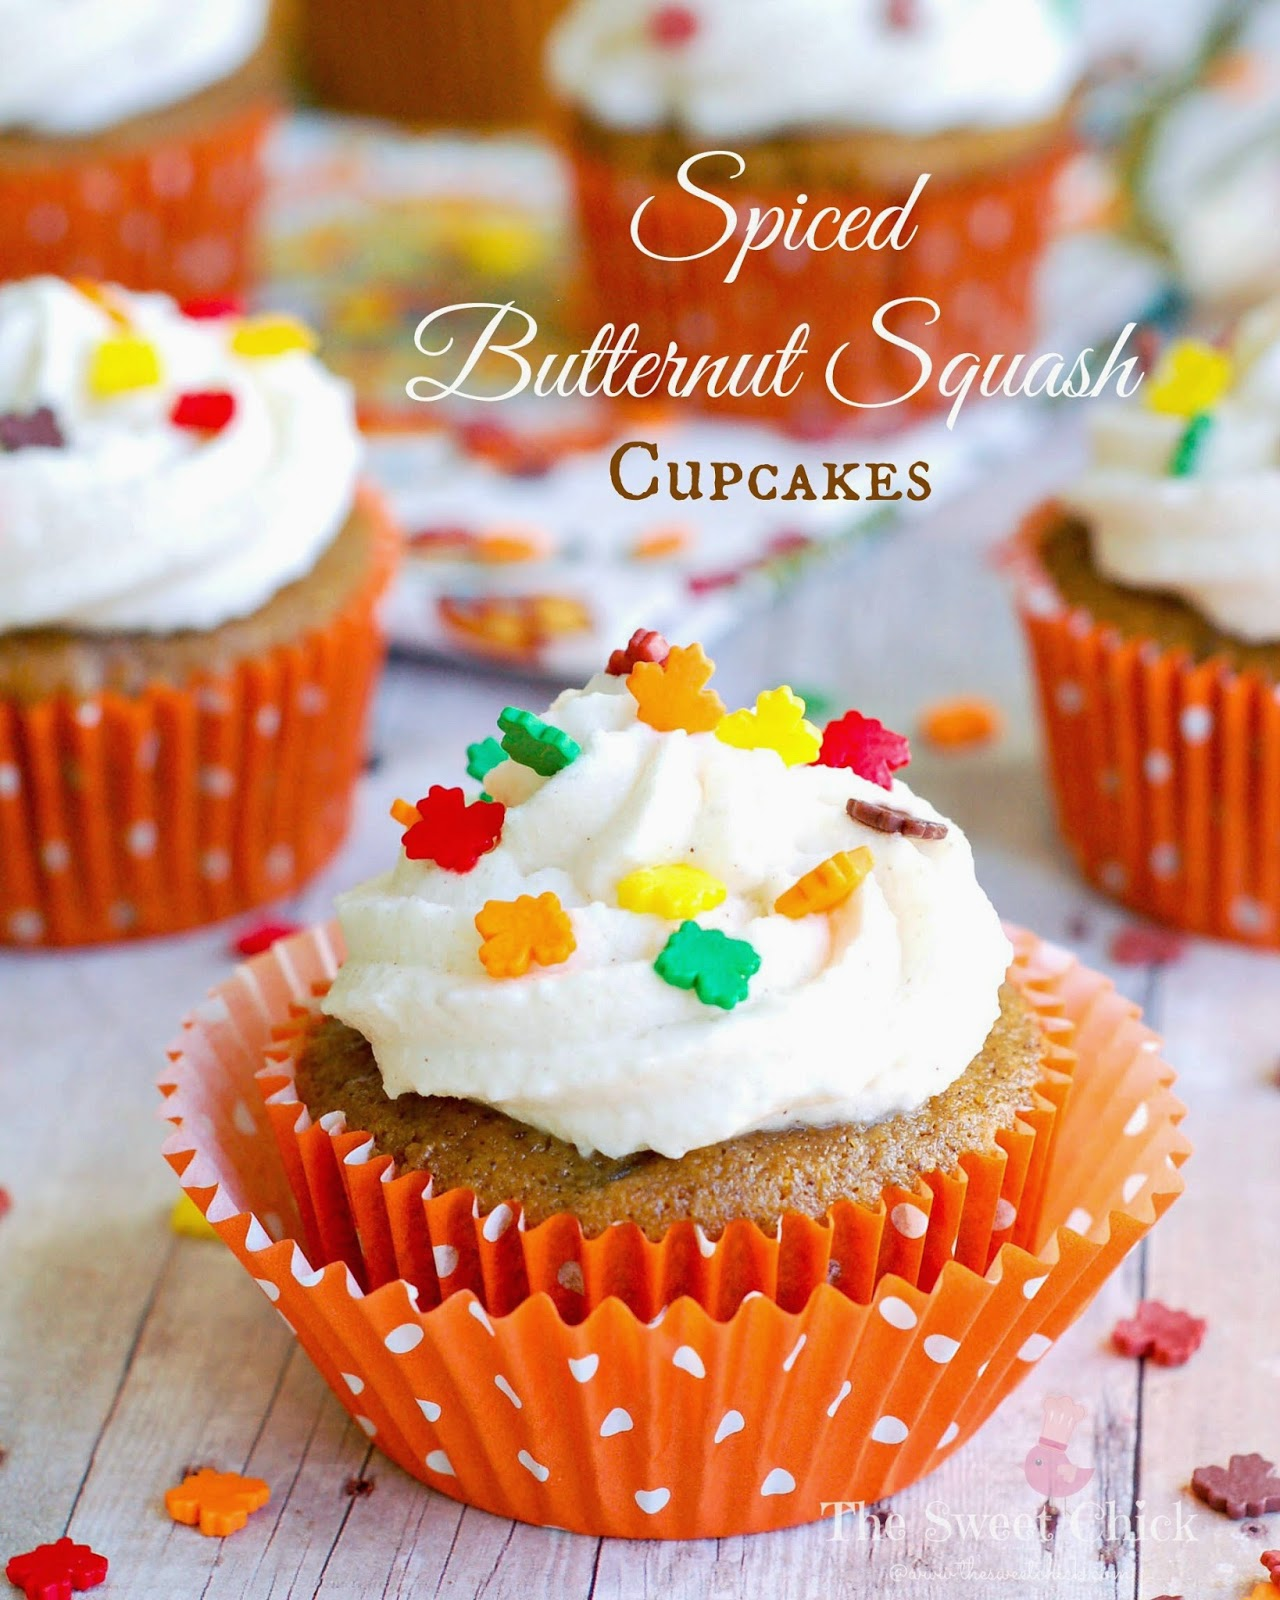 Spiced Butternut Squash Cupcakes by The Sweet Chick